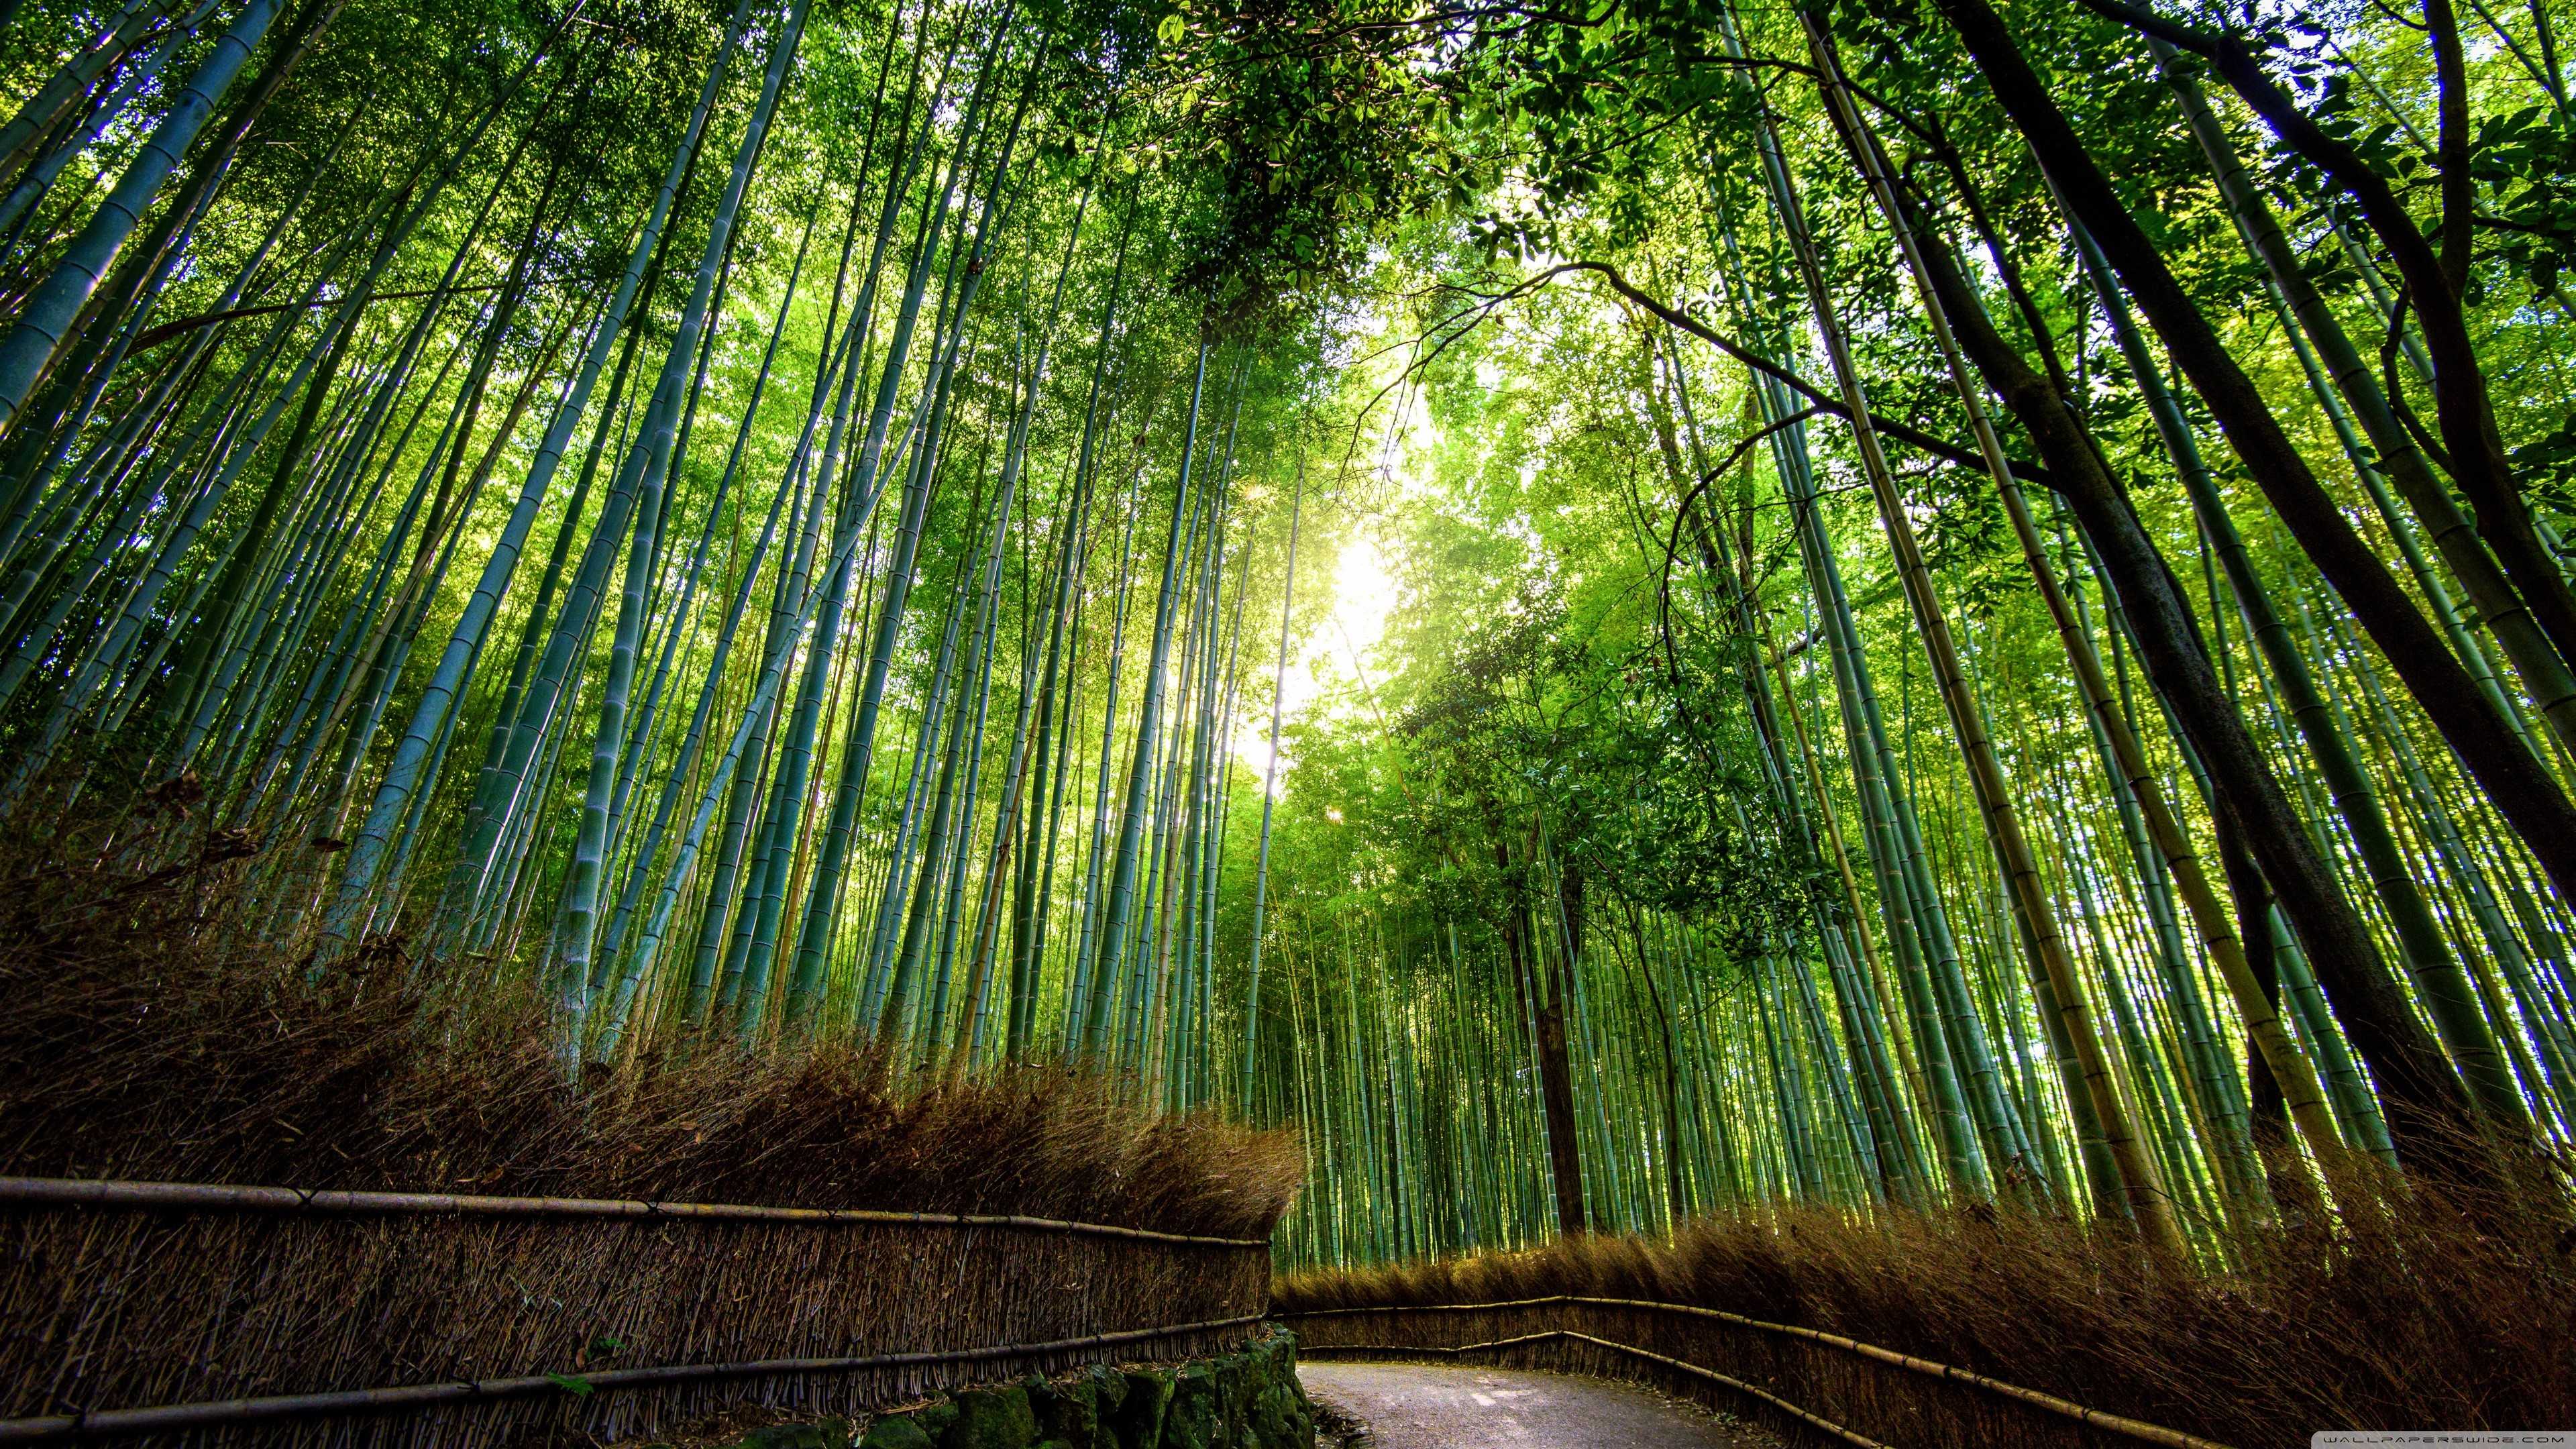 3840x2160 4K Ultra HD Jungle Wallpapers HD, Desktop Backgrounds  ... Bamboo  ...